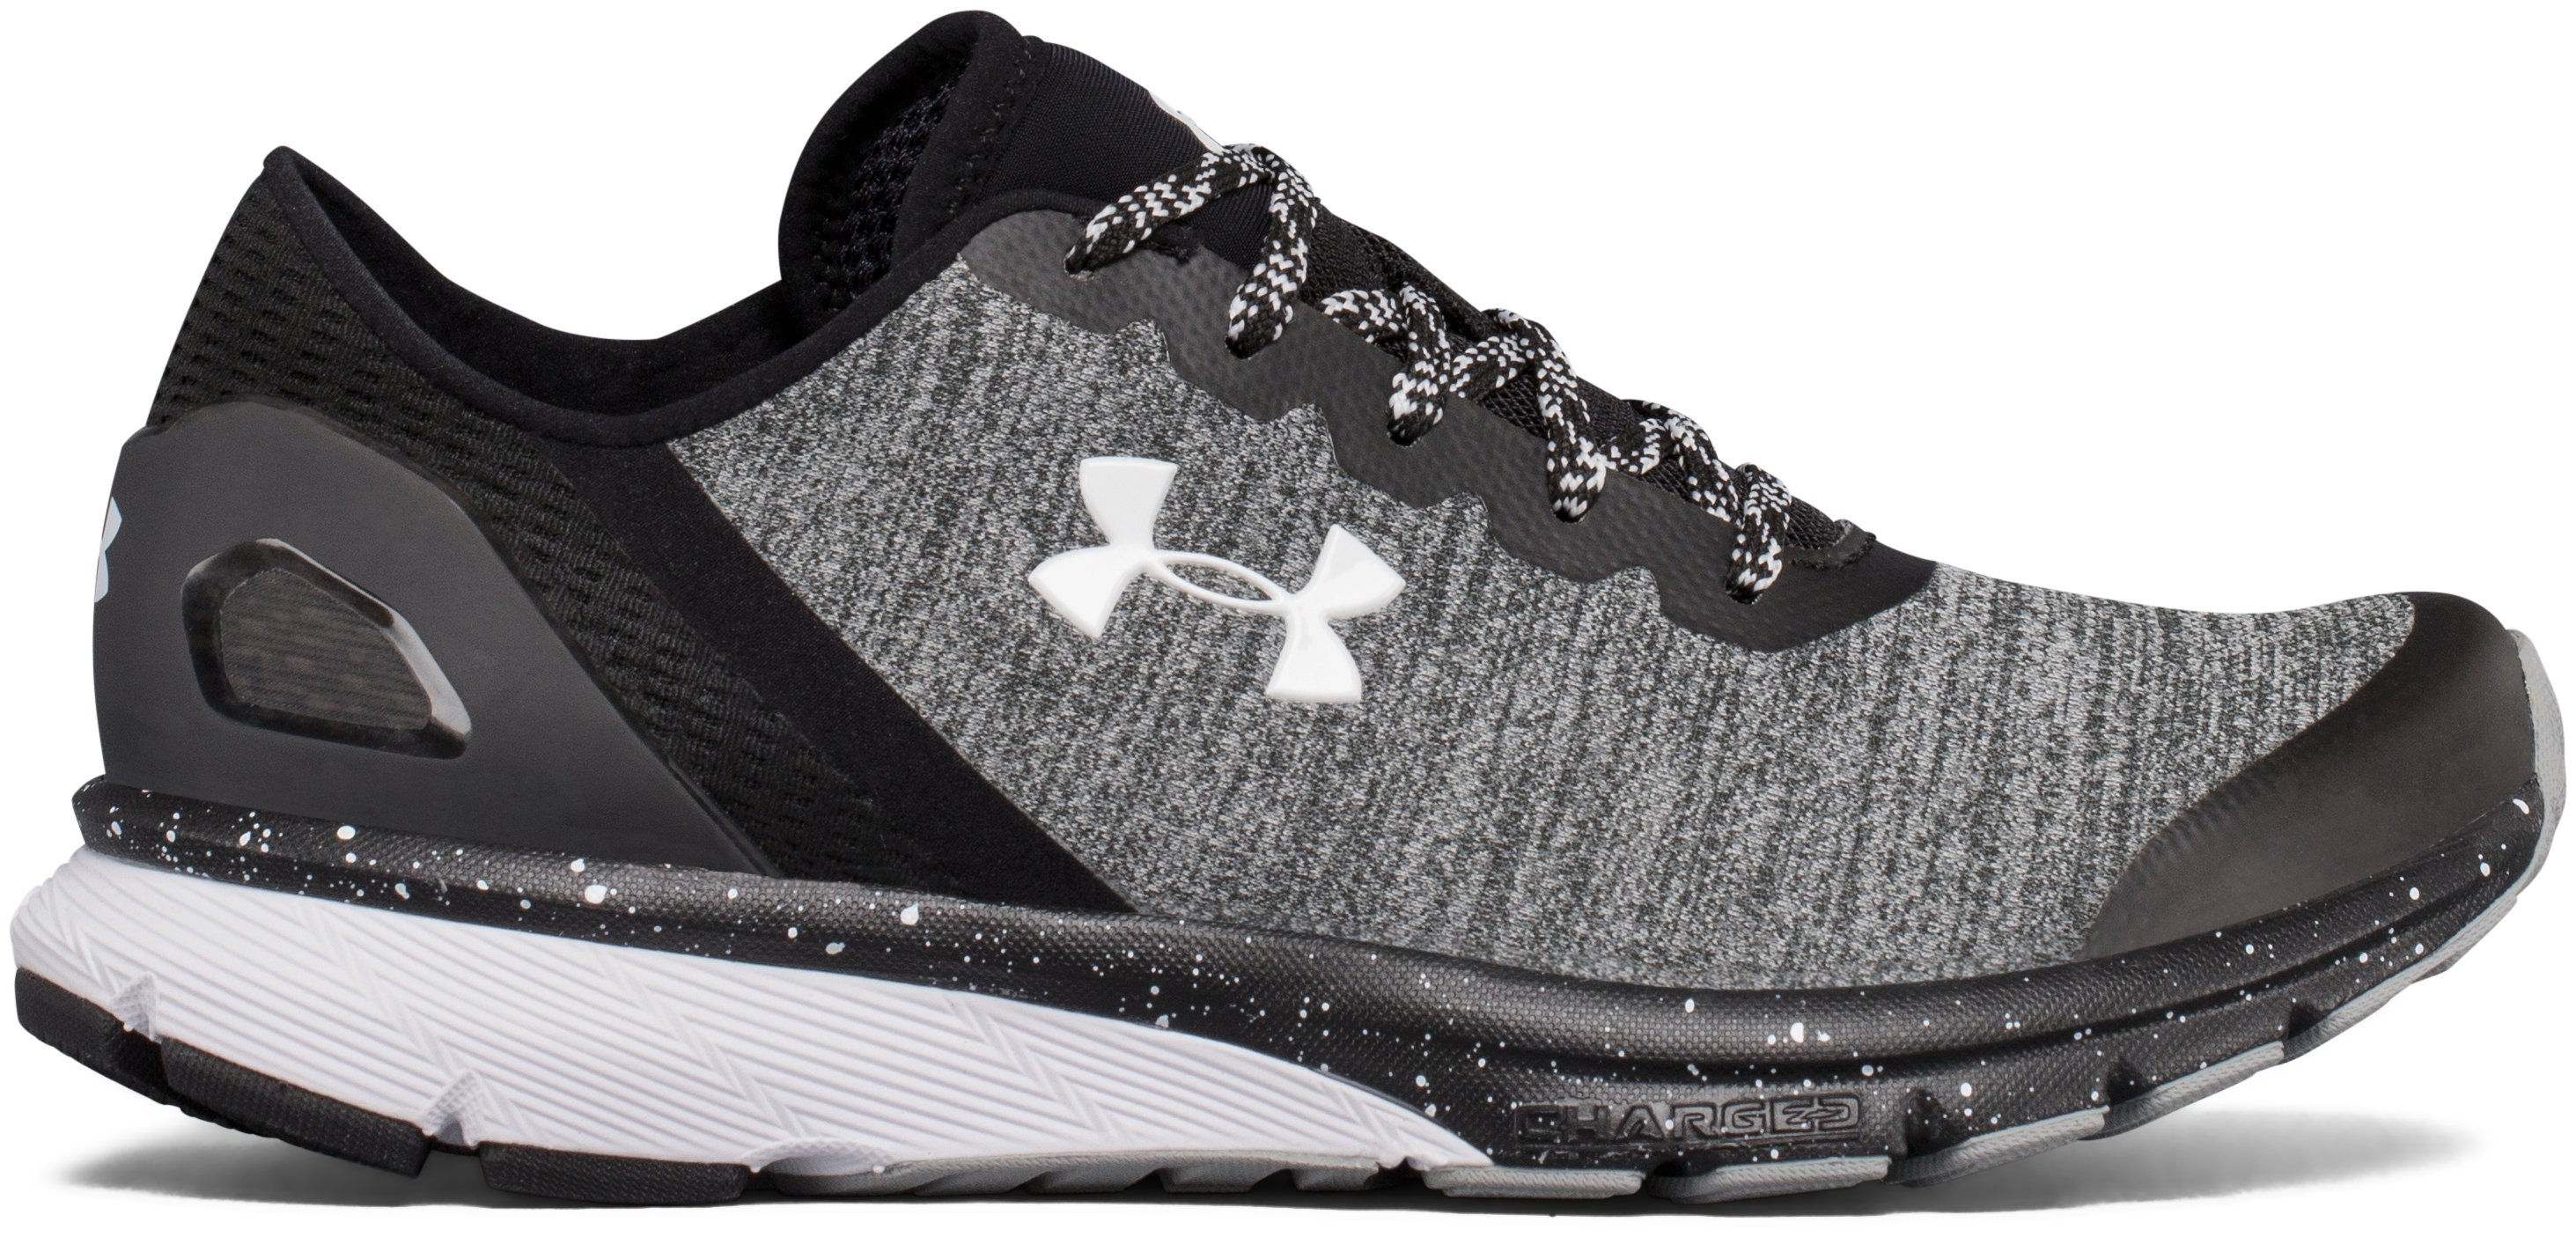 Under Armour Charged Escape 2 ... Men's Running Shoes